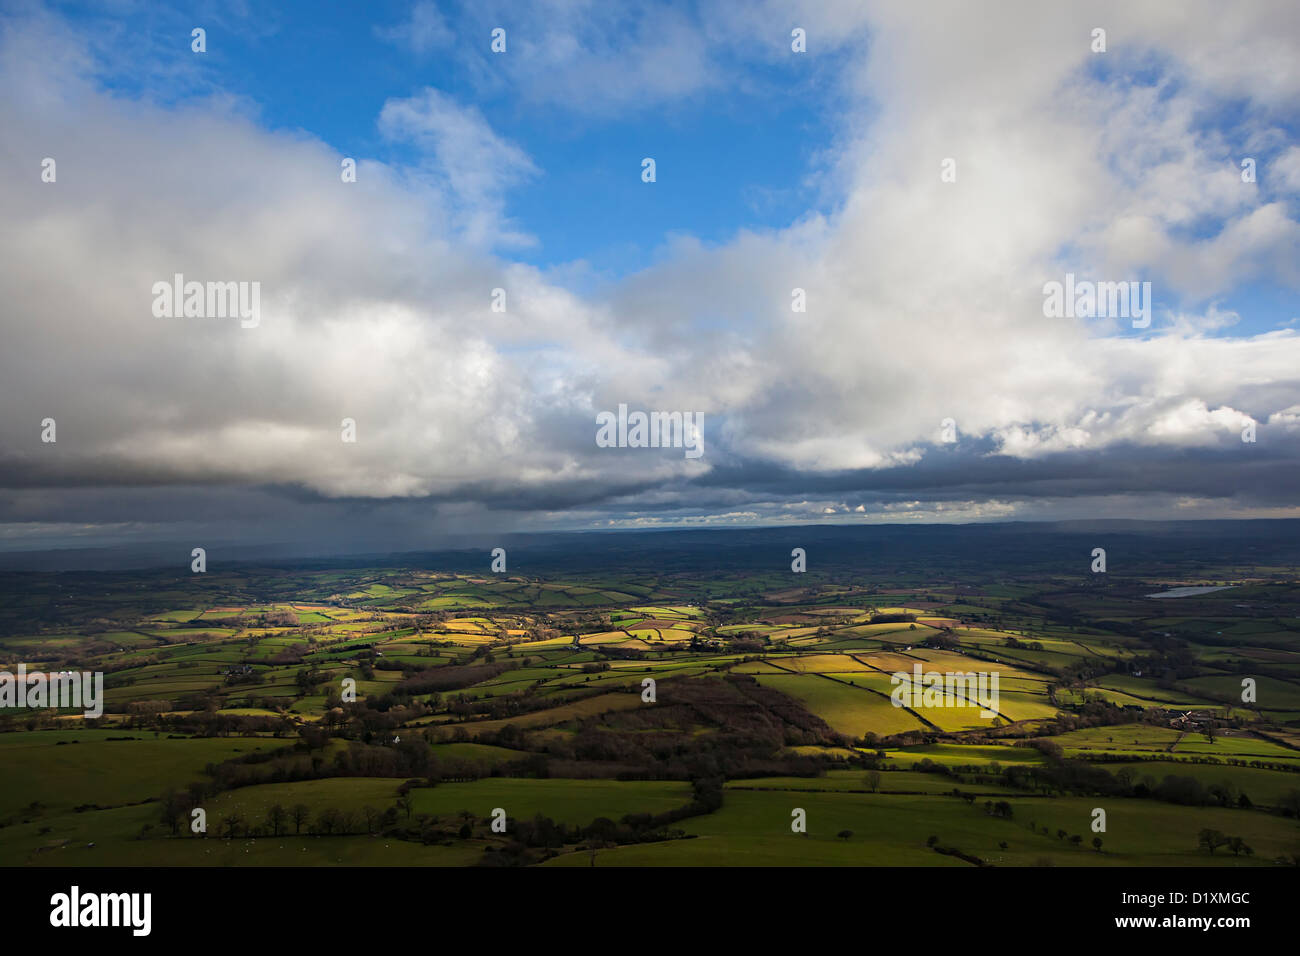 Fields partially lit by gaps in the clouds, seen from the Skirrid mountain, Wales, UK - Stock Image